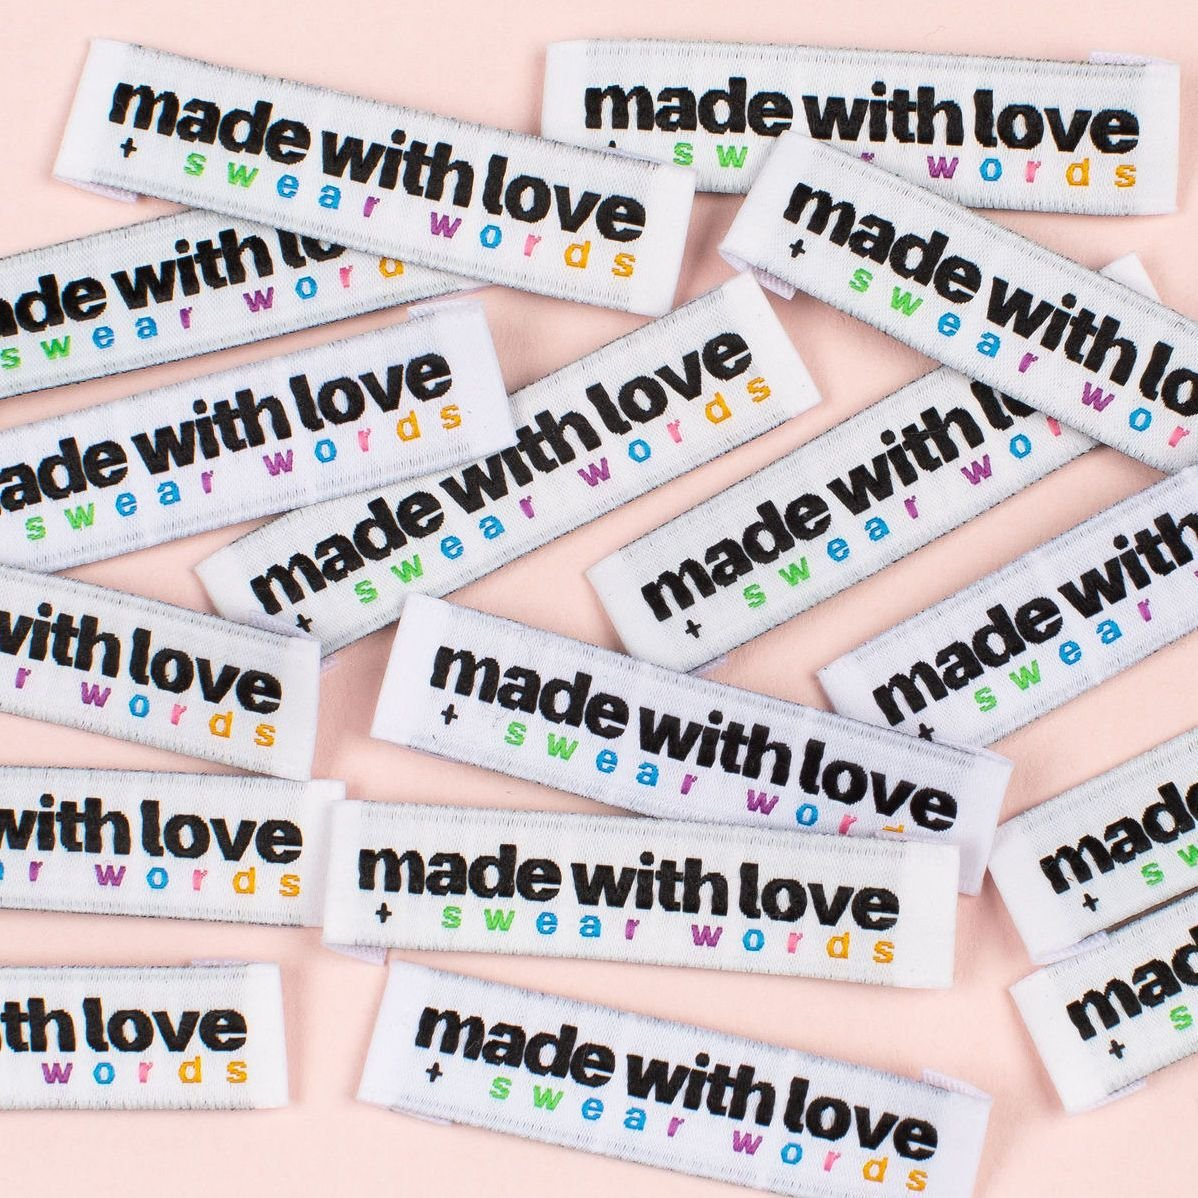 Kylie and the Machine Made with Love and Swear Words Labels